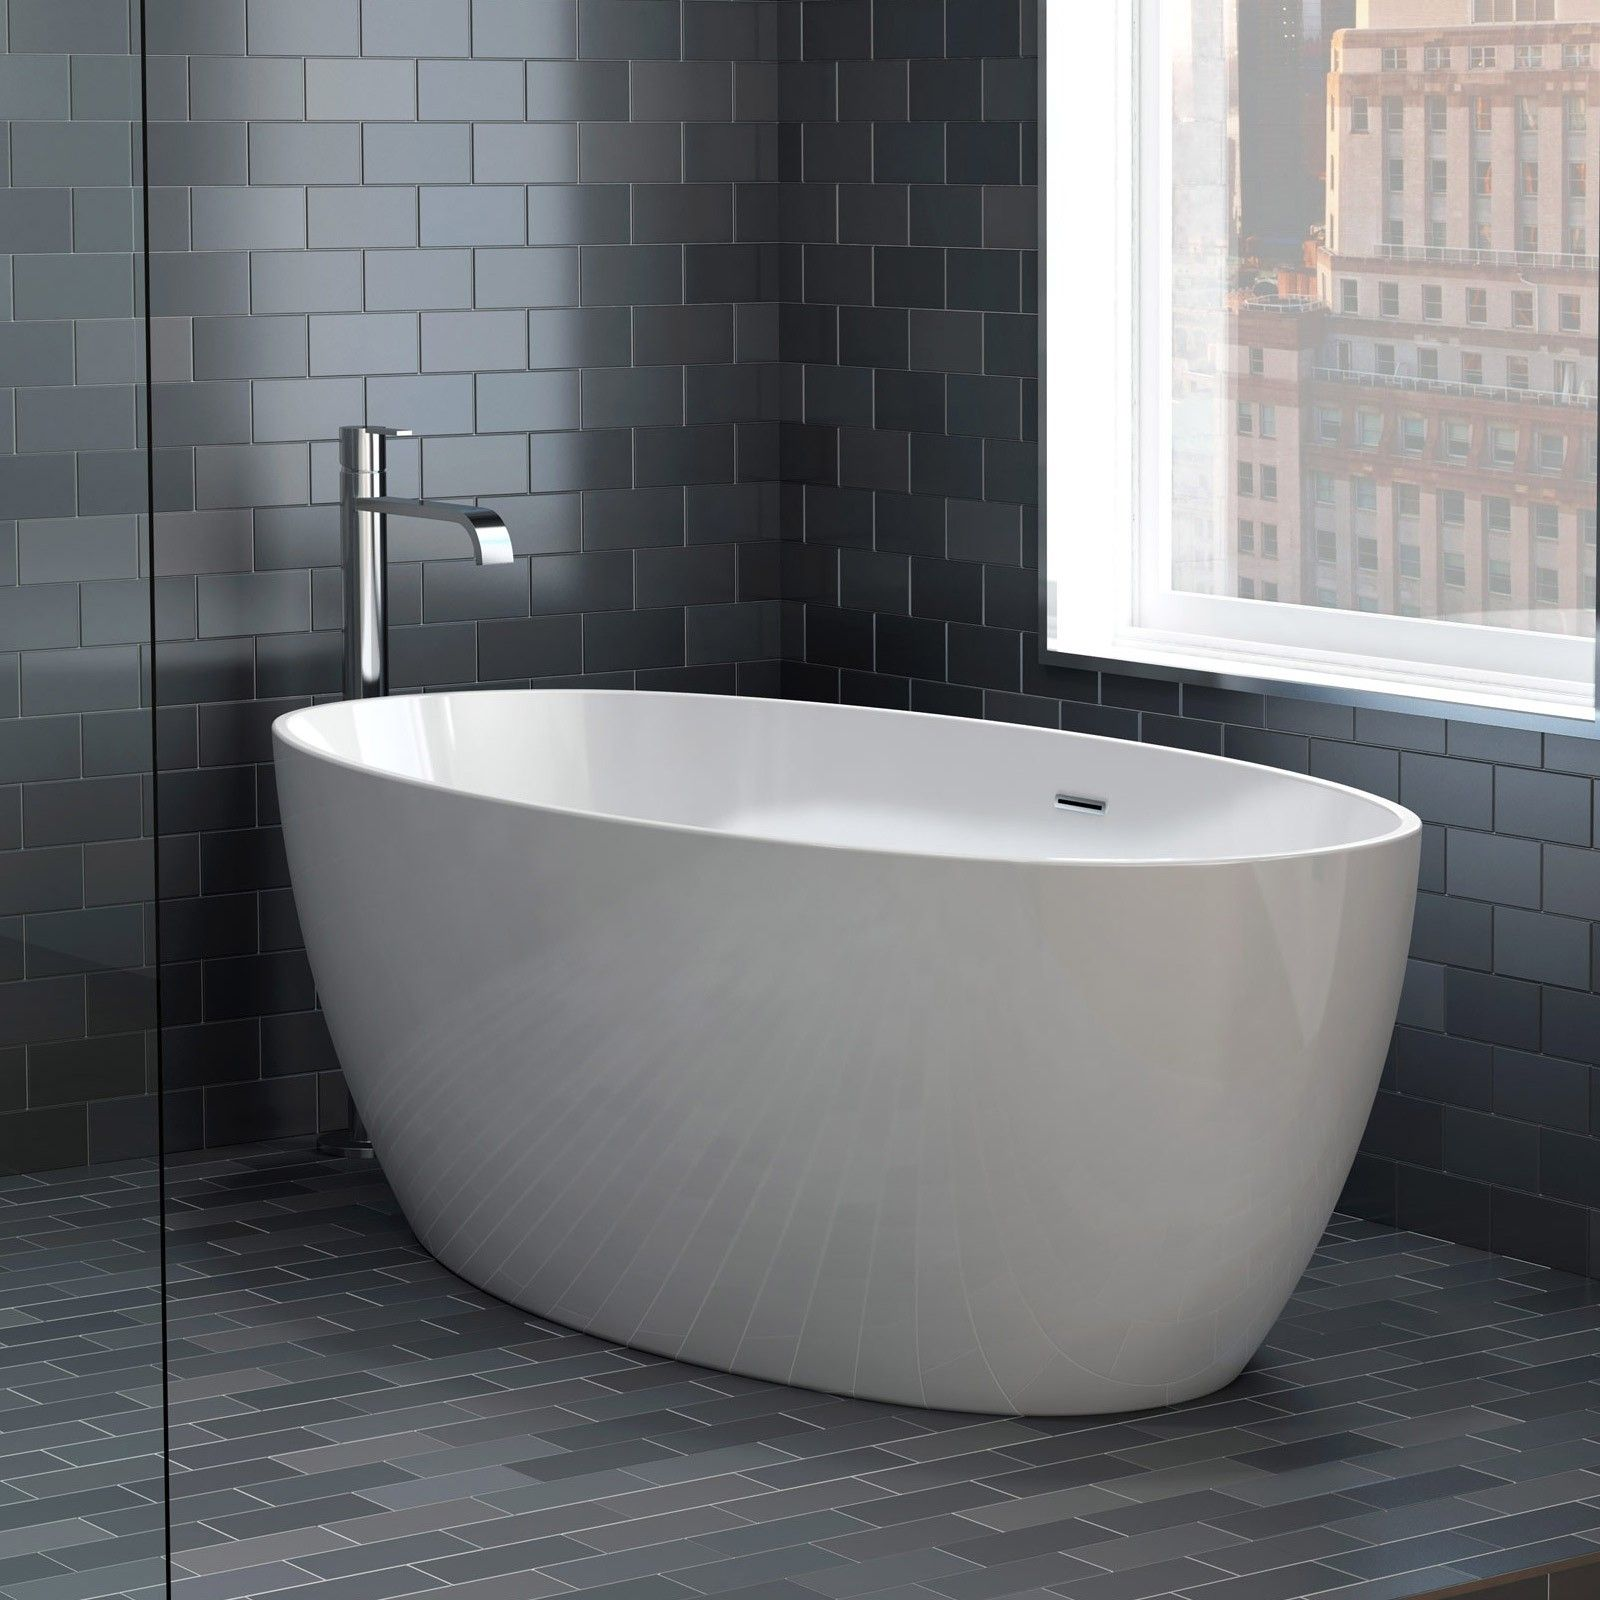 Aria Voce Petite 55 Inch Acrylic Double Ended Freestanding Bathtub ...